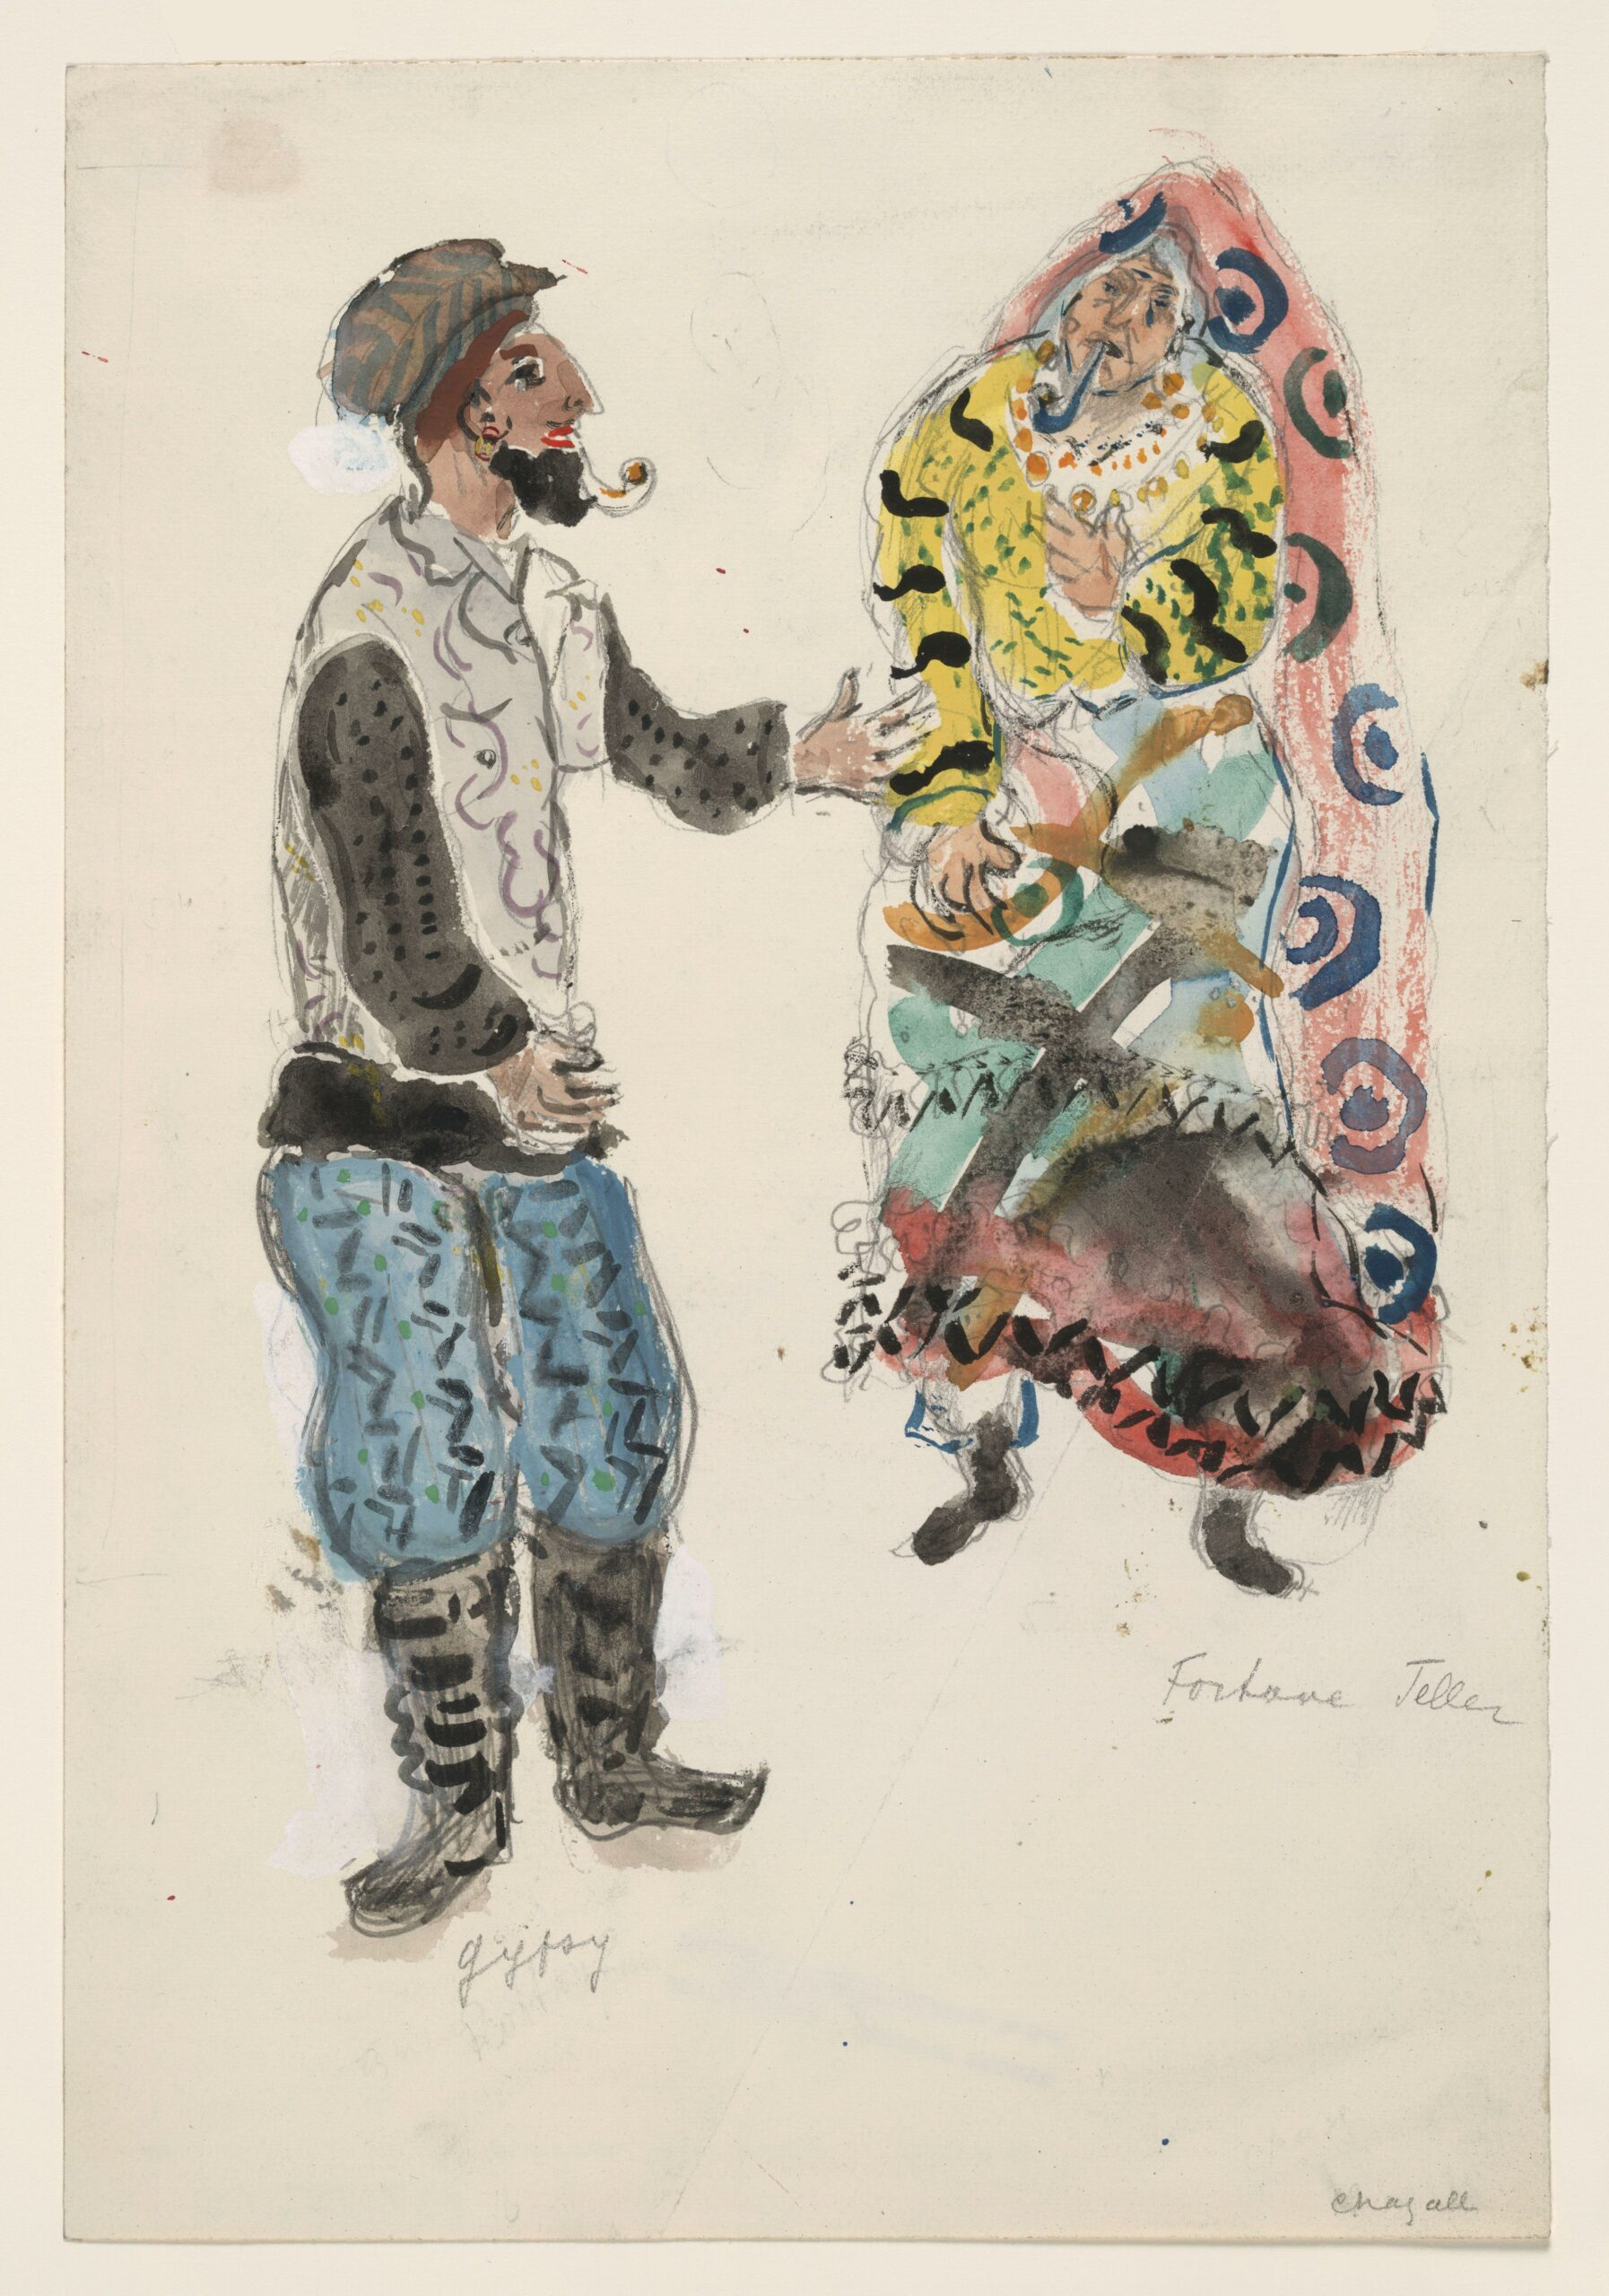 Marc Chagall – A Fortune Teller and a Gypsy